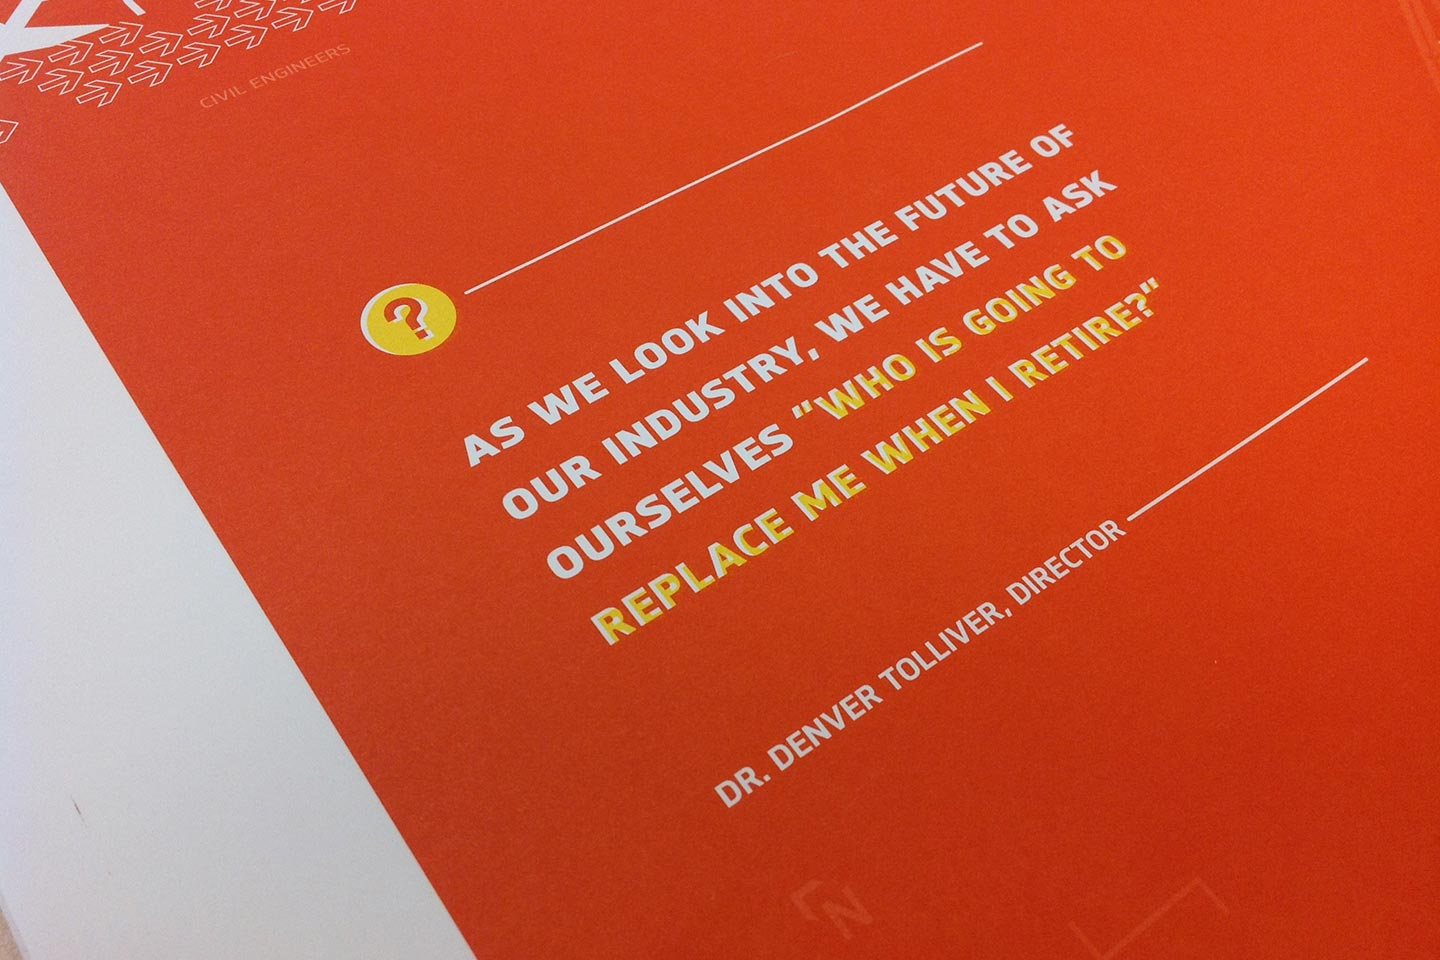 Close-up of white text on red background of transportation brochure